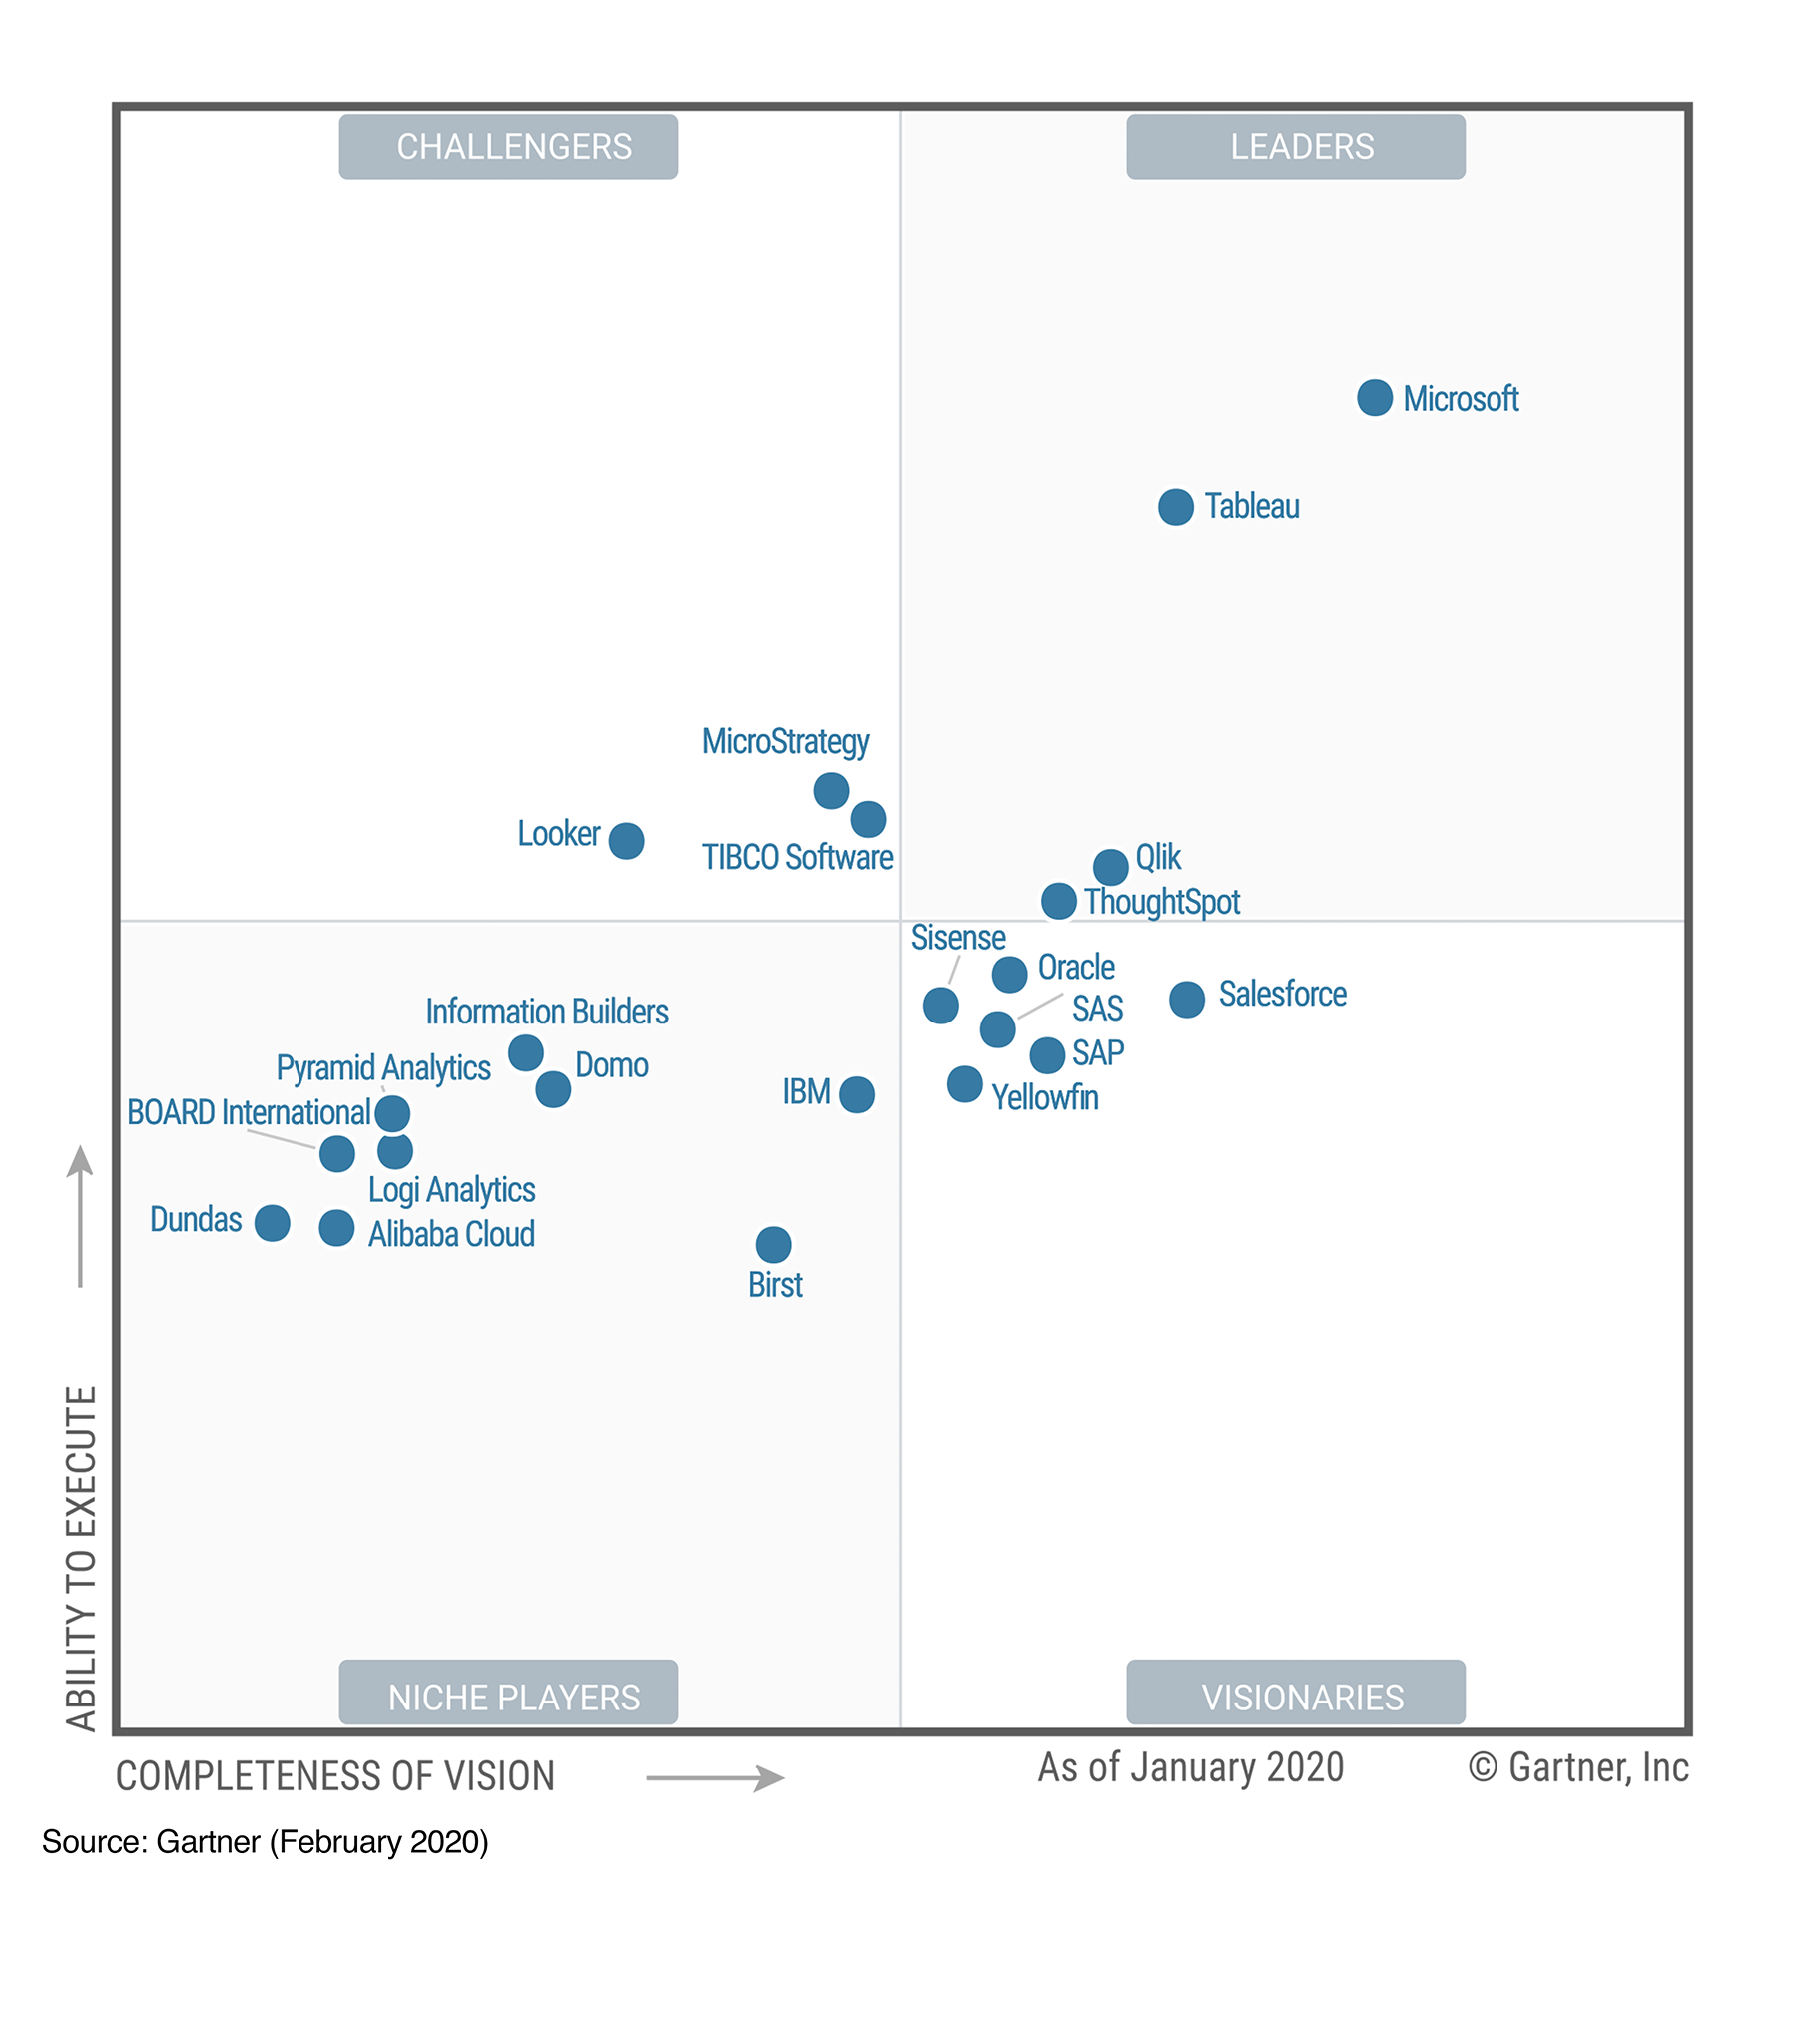 2020 Magic Quadrant image